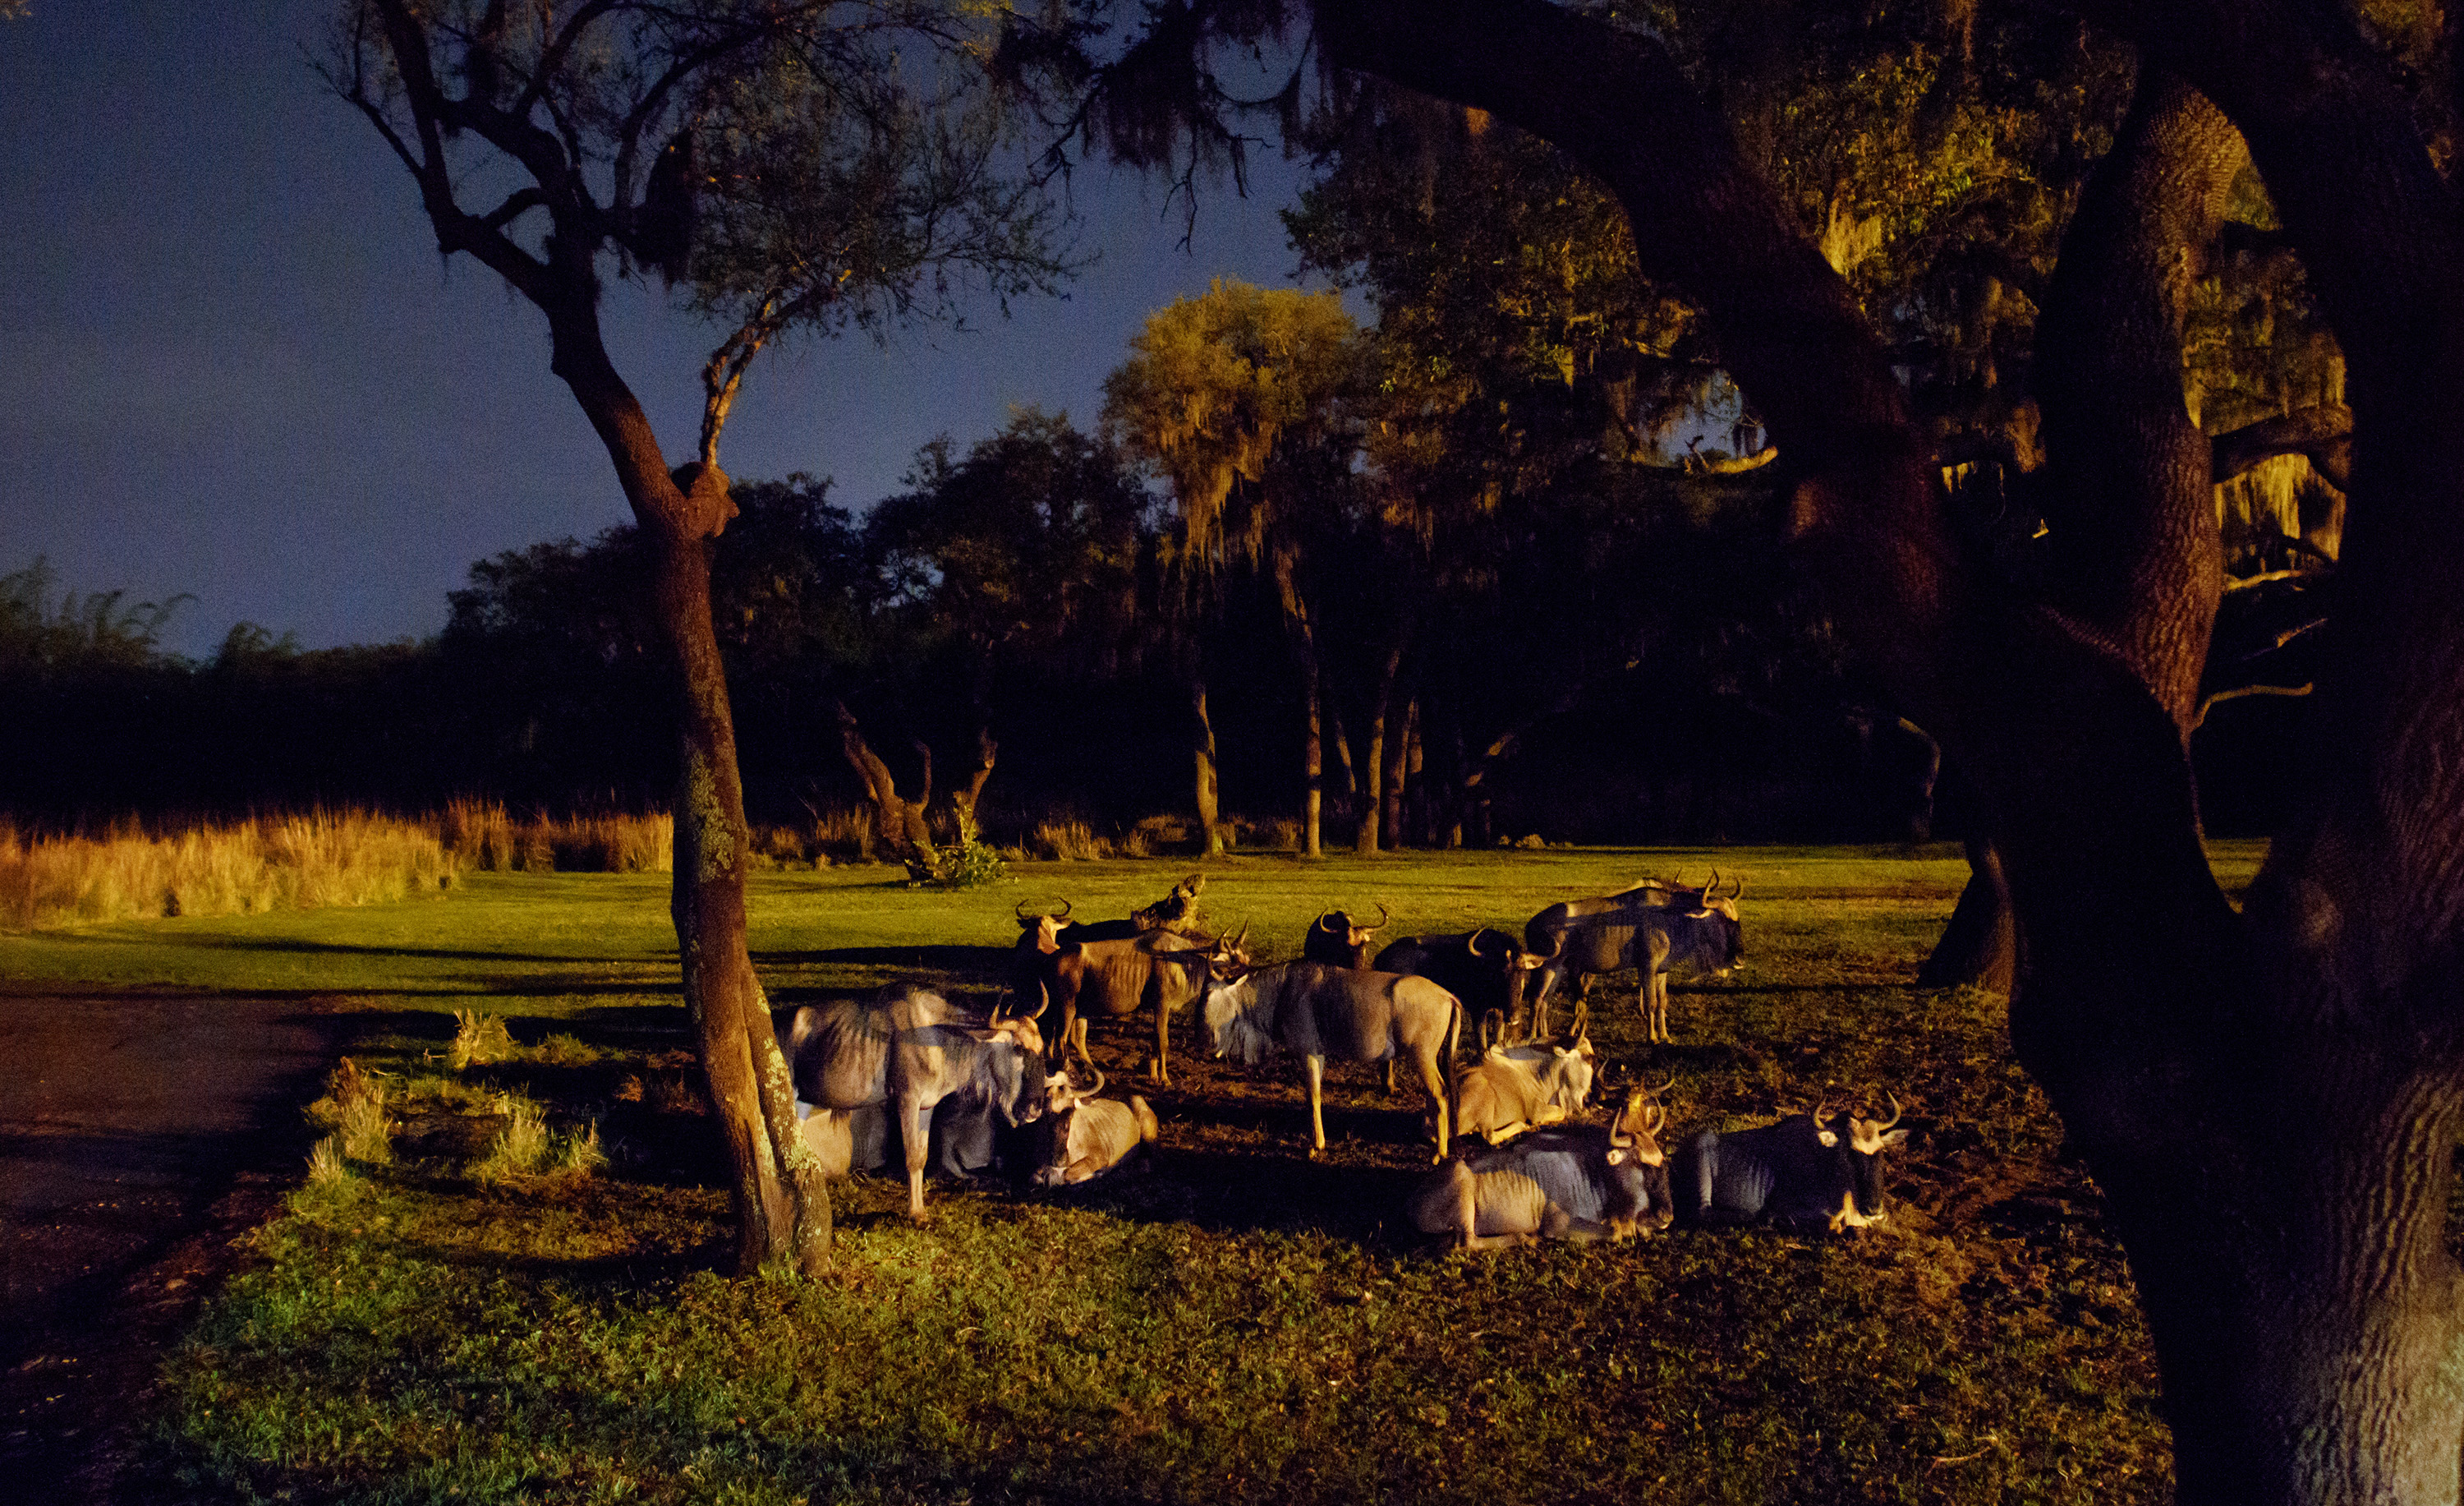 Kilimanjaro Safaris After Dark